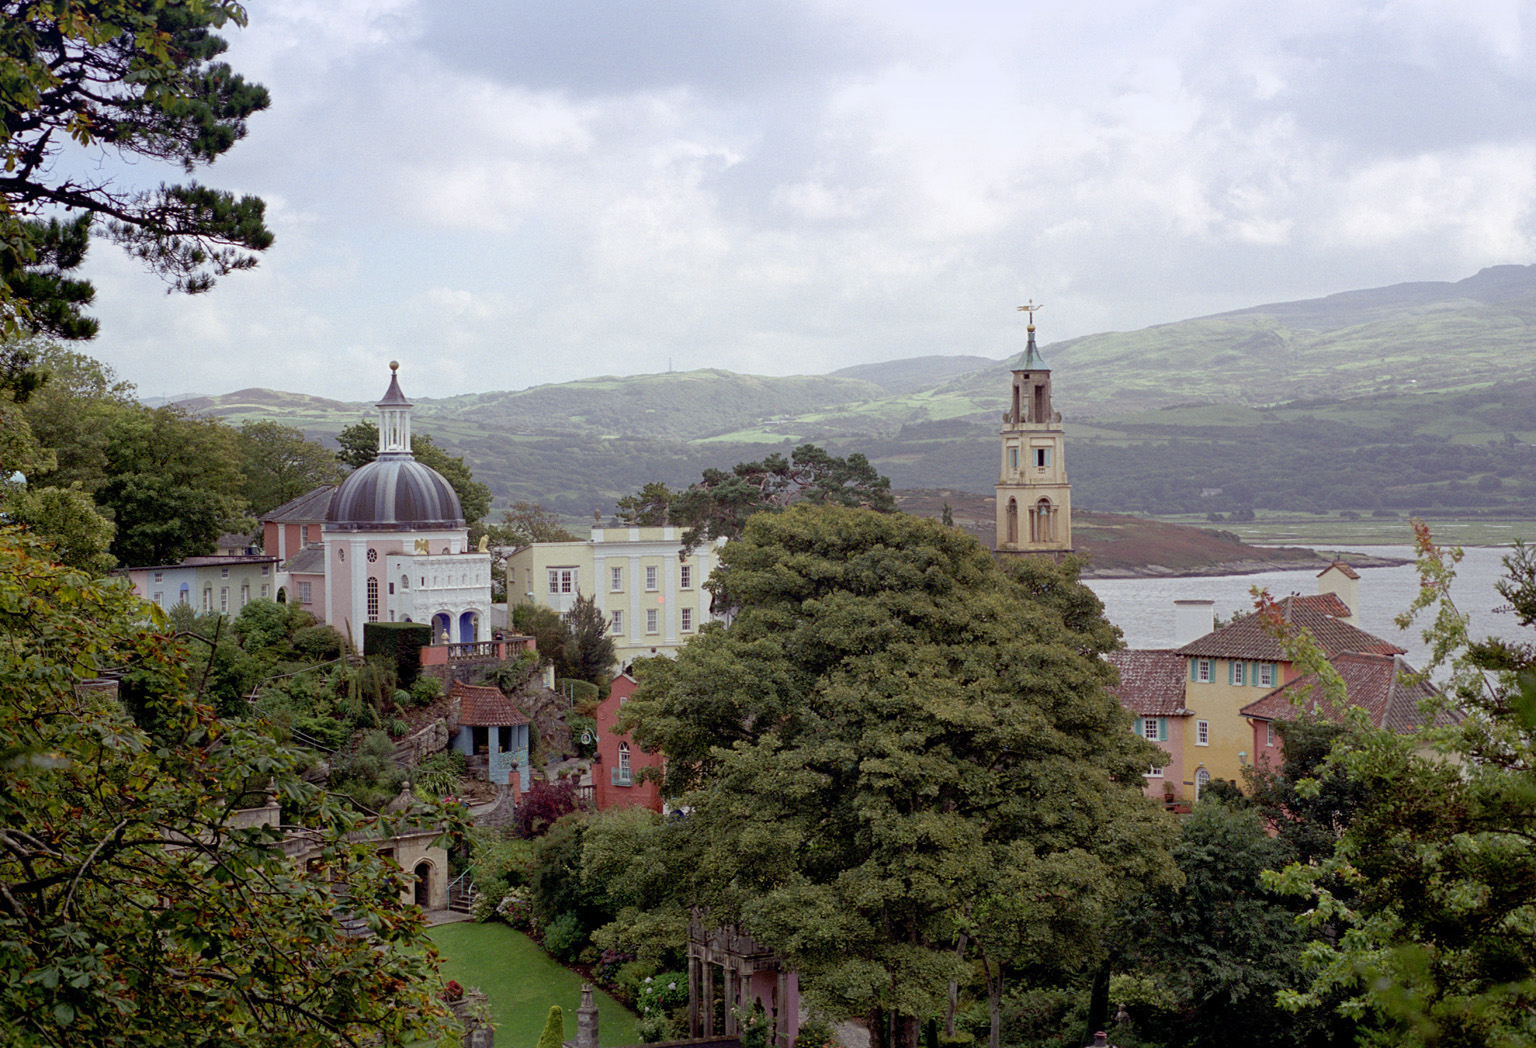 View of Portmeirion, Gwynedd, Wales, a popular tourist village modelled on an Italian town designed built by Sir Clough Williams-Ellis